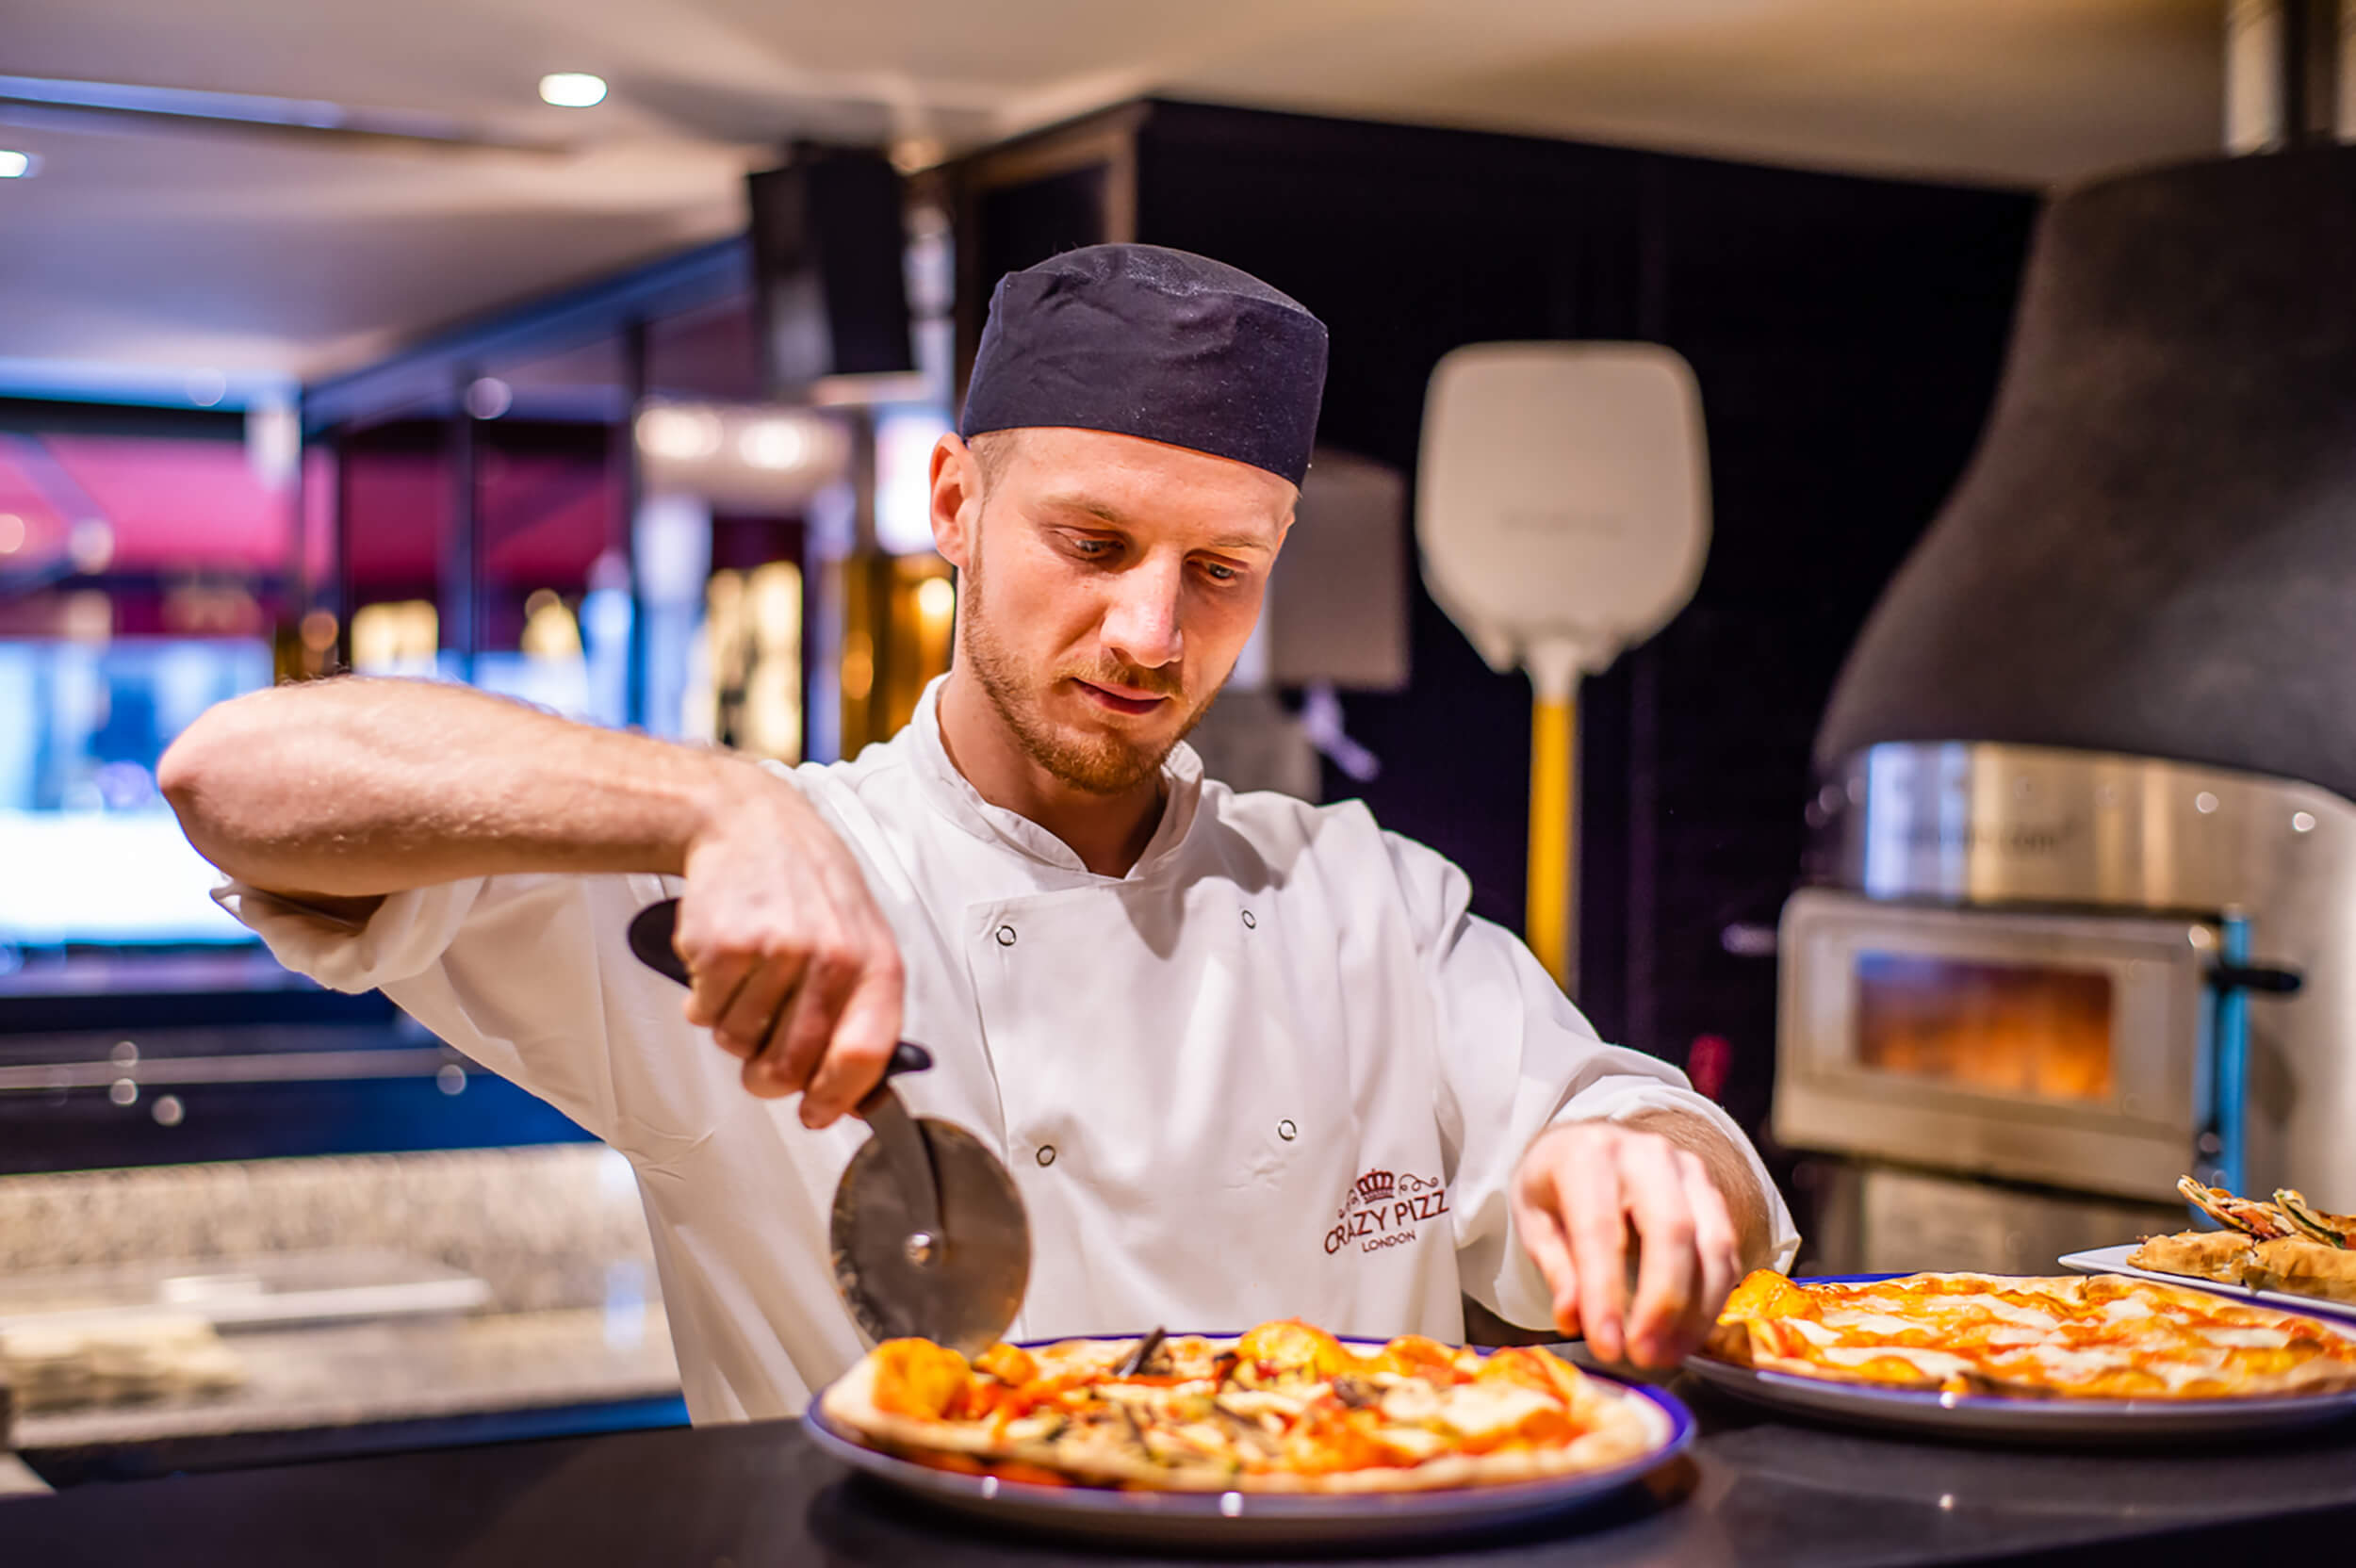 Chef cutting a pizza ready to be served.